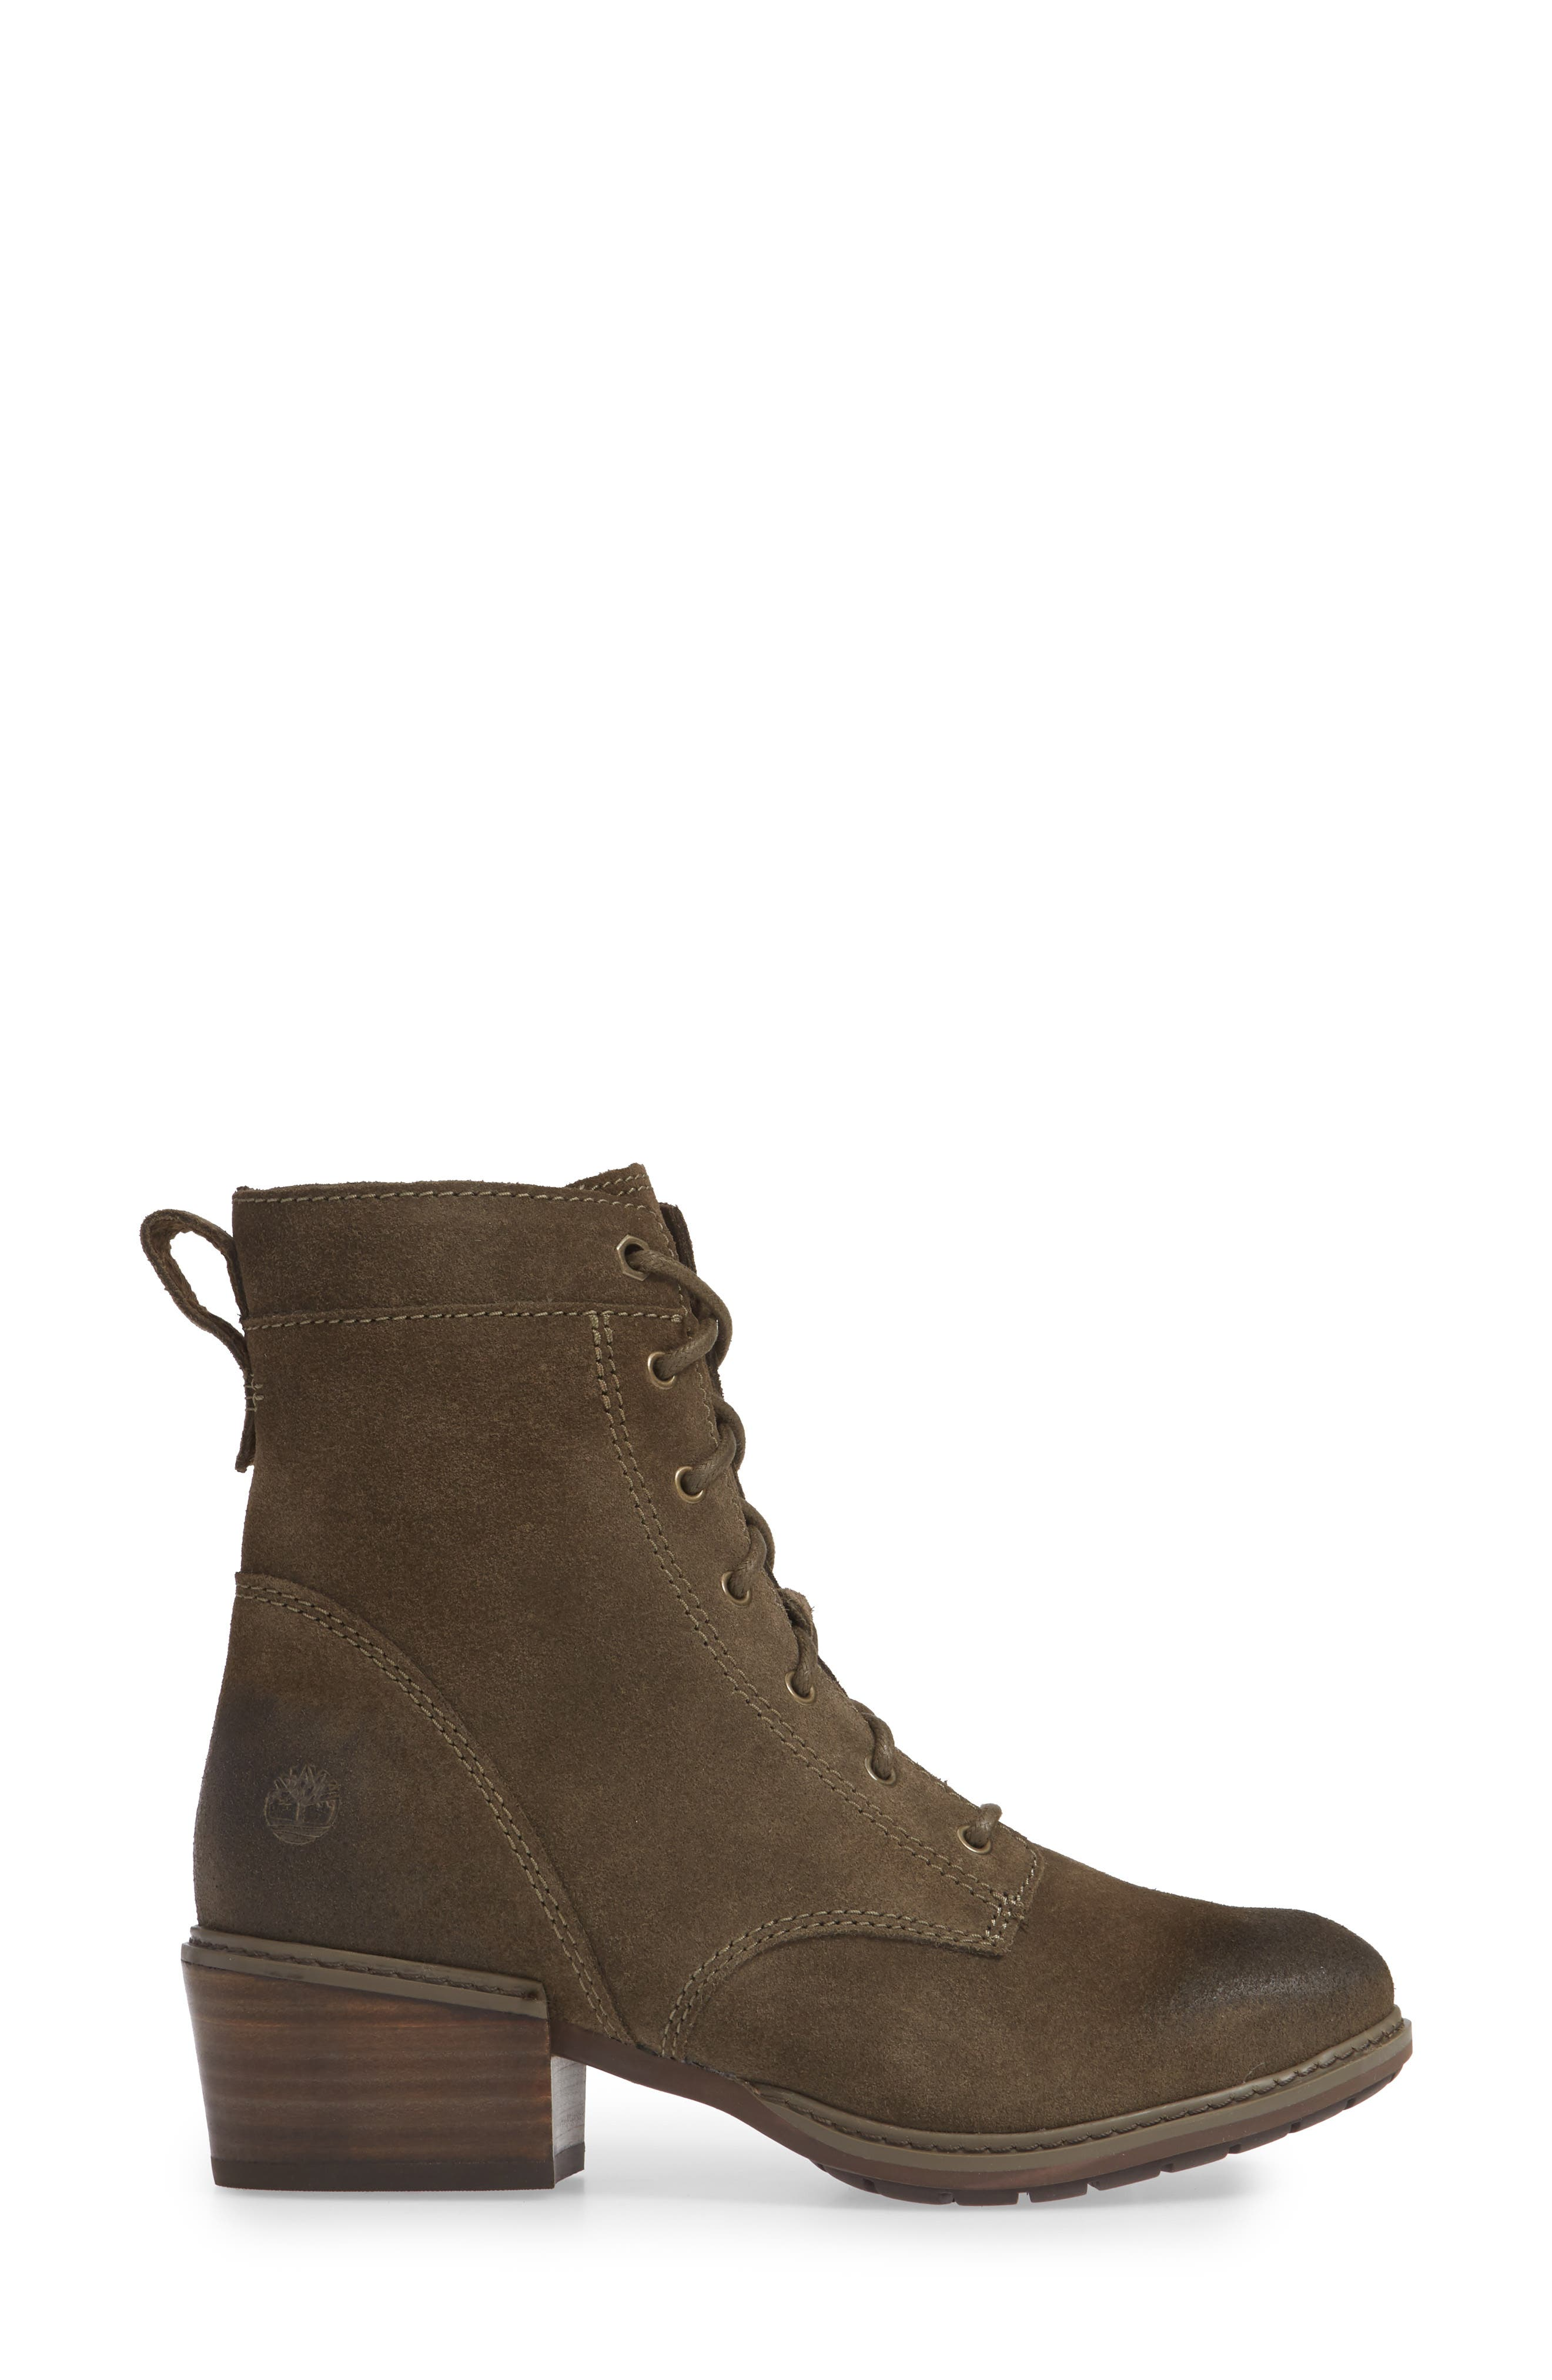 TIMBERLAND,                             Sutherlin Bay Water Resistant Lace-Up Bootie,                             Alternate thumbnail 3, color,                             CANTEEN SUEDE